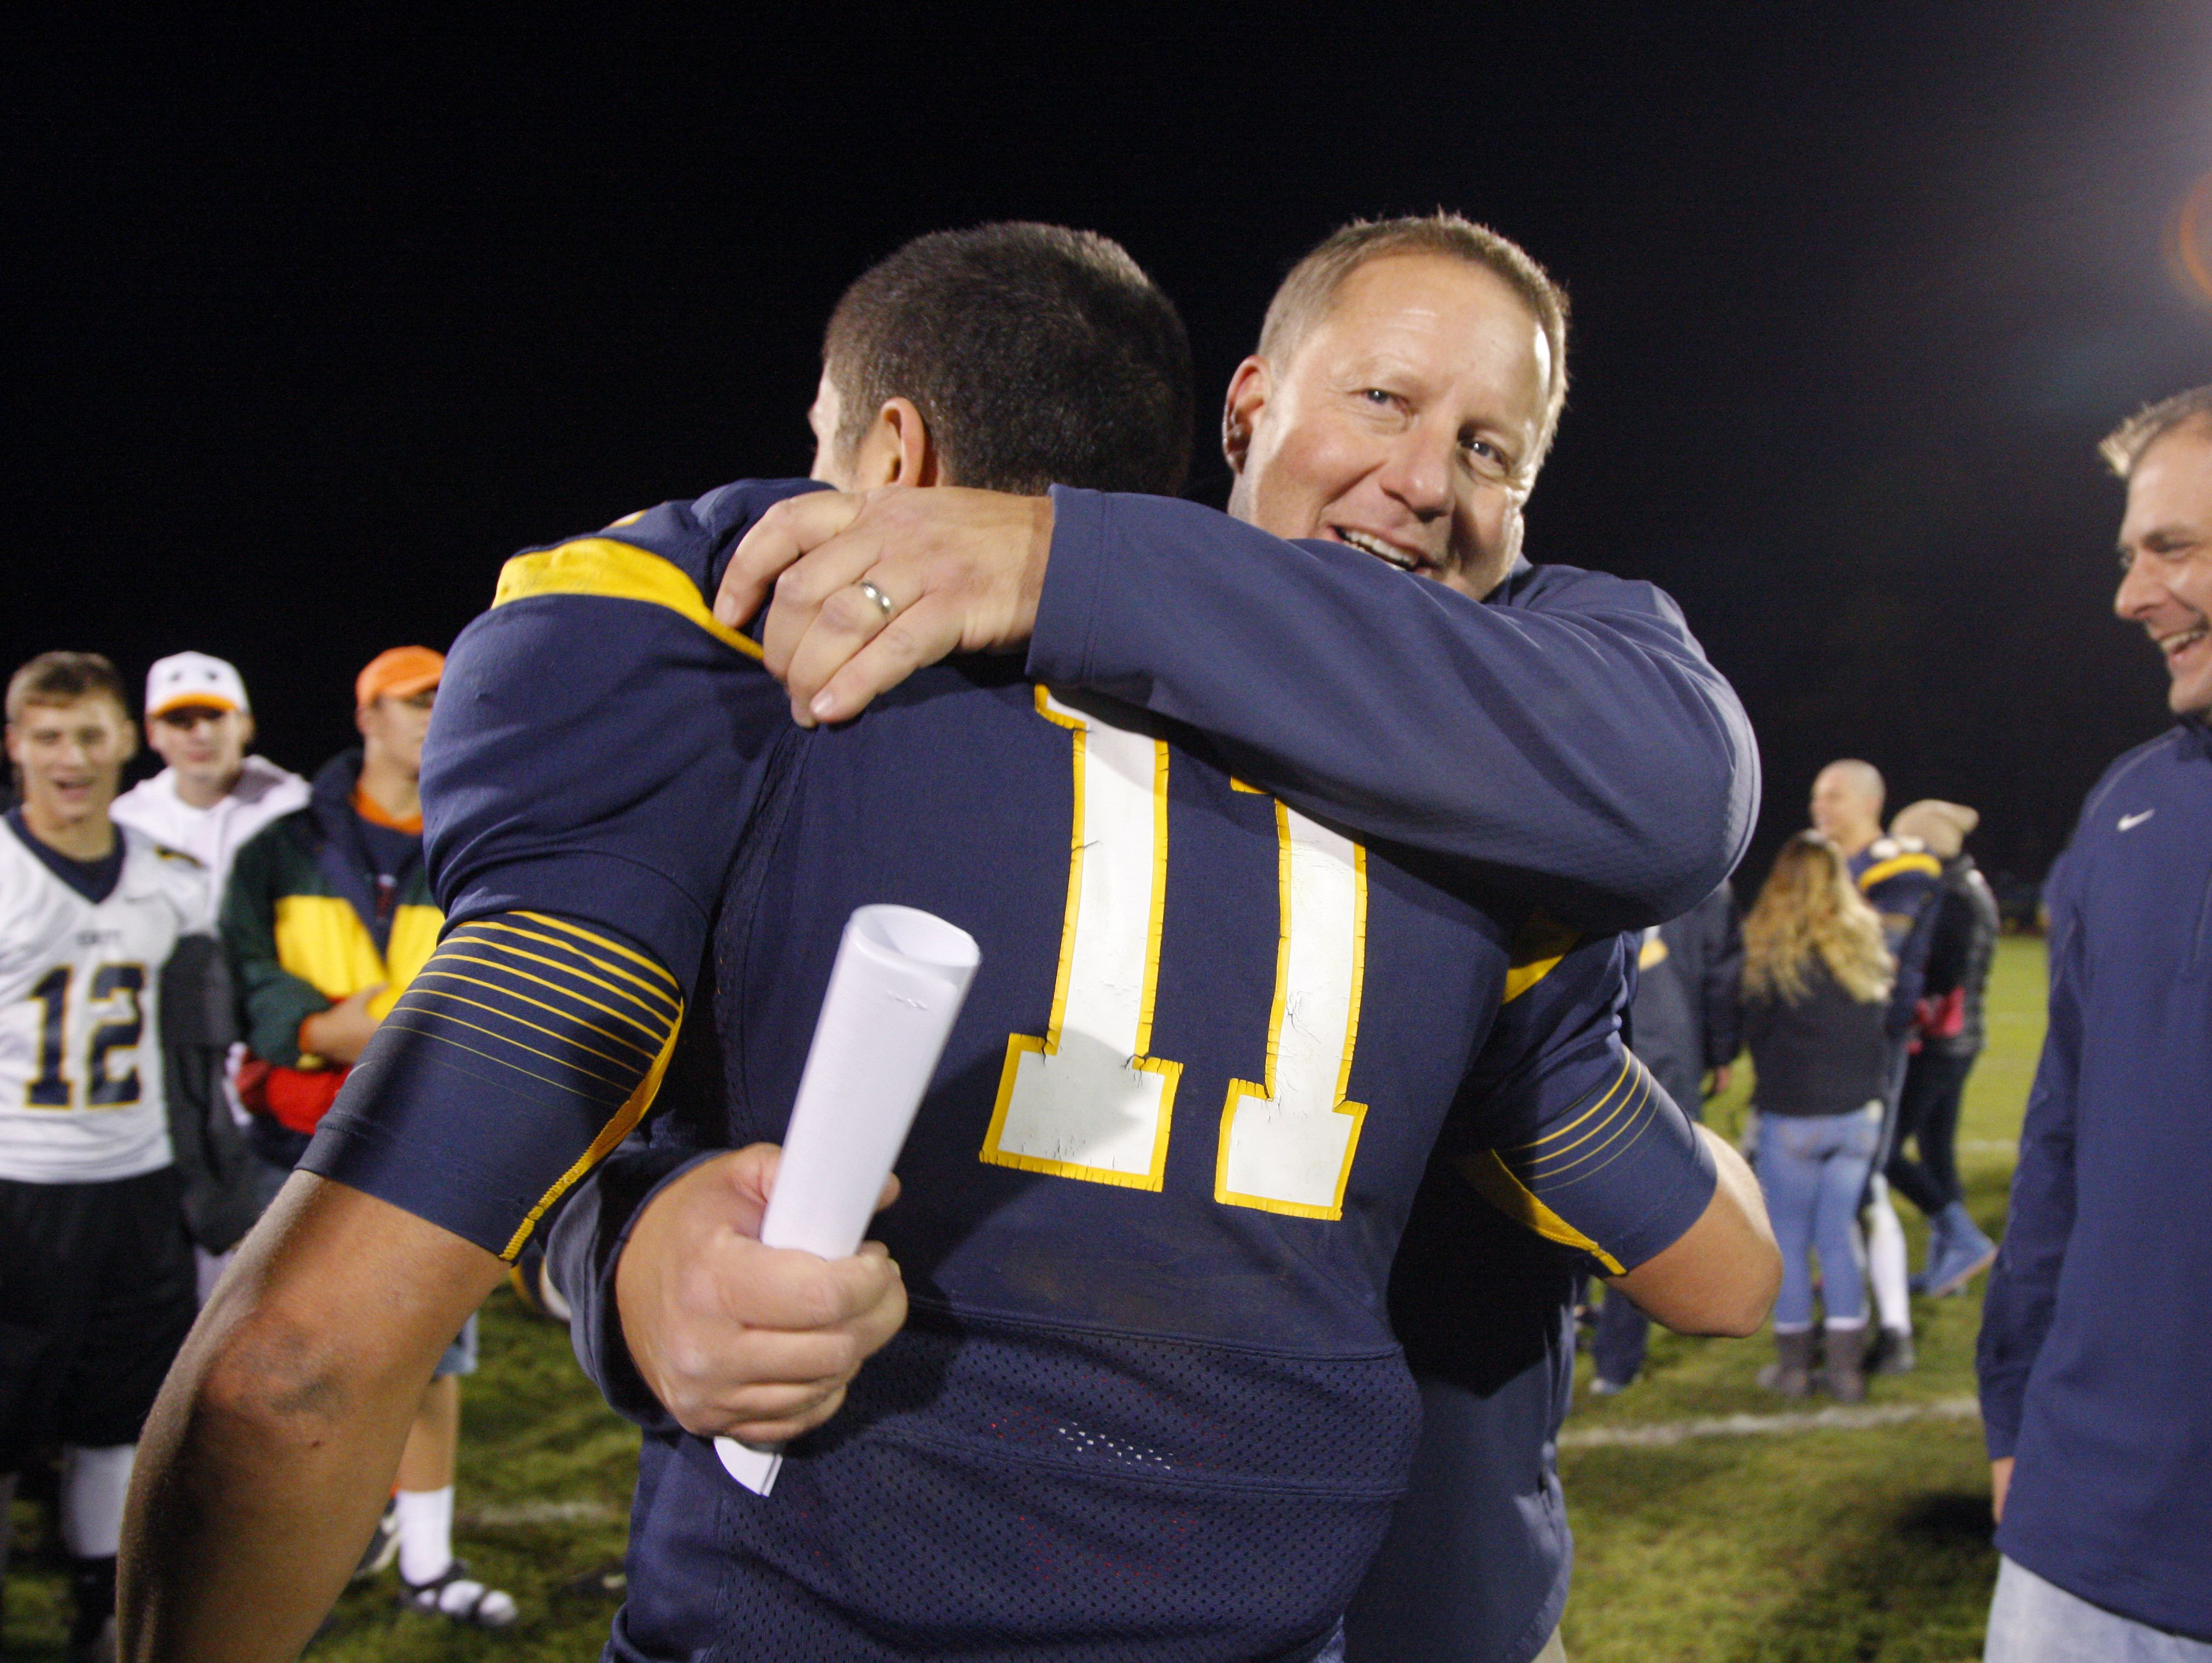 DeWitt coach Rob Zimmerman and Nicholas Simon celebrate following their 21-7 win over East Lansing Friday, Oct. 28, 2016, in DeWitt, Mich.